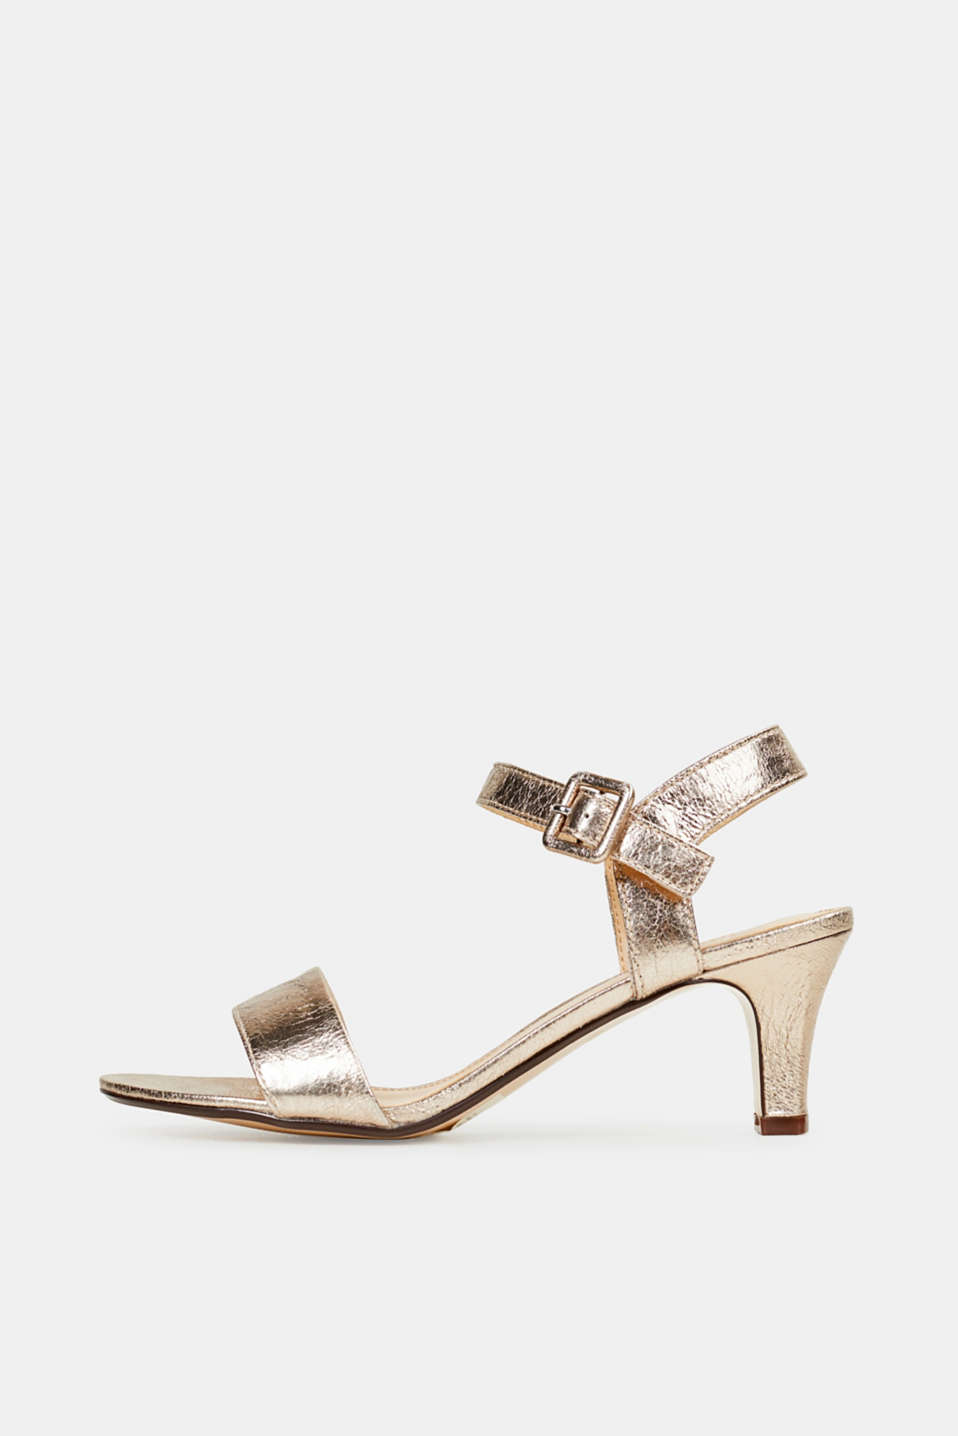 Esprit - Sandalette im Metallic-Crash-Look